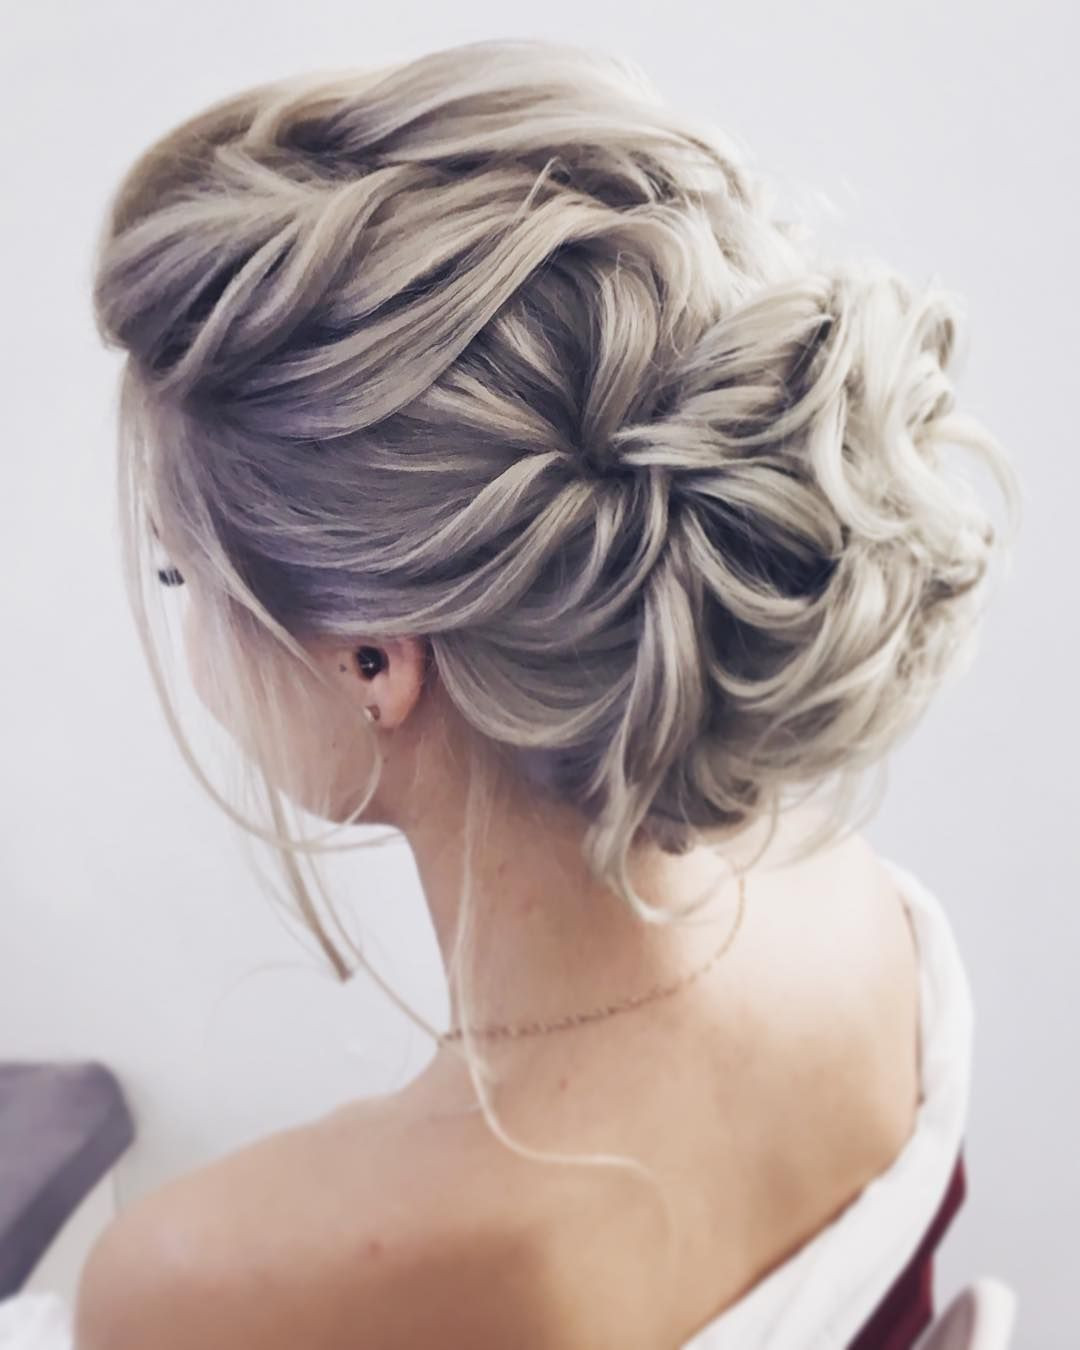 Best ideas about Hairstyle Updo 2019 . Save or Pin Peinados para Boda 2019 Fáciles Paso a Paso para Novia e Now.